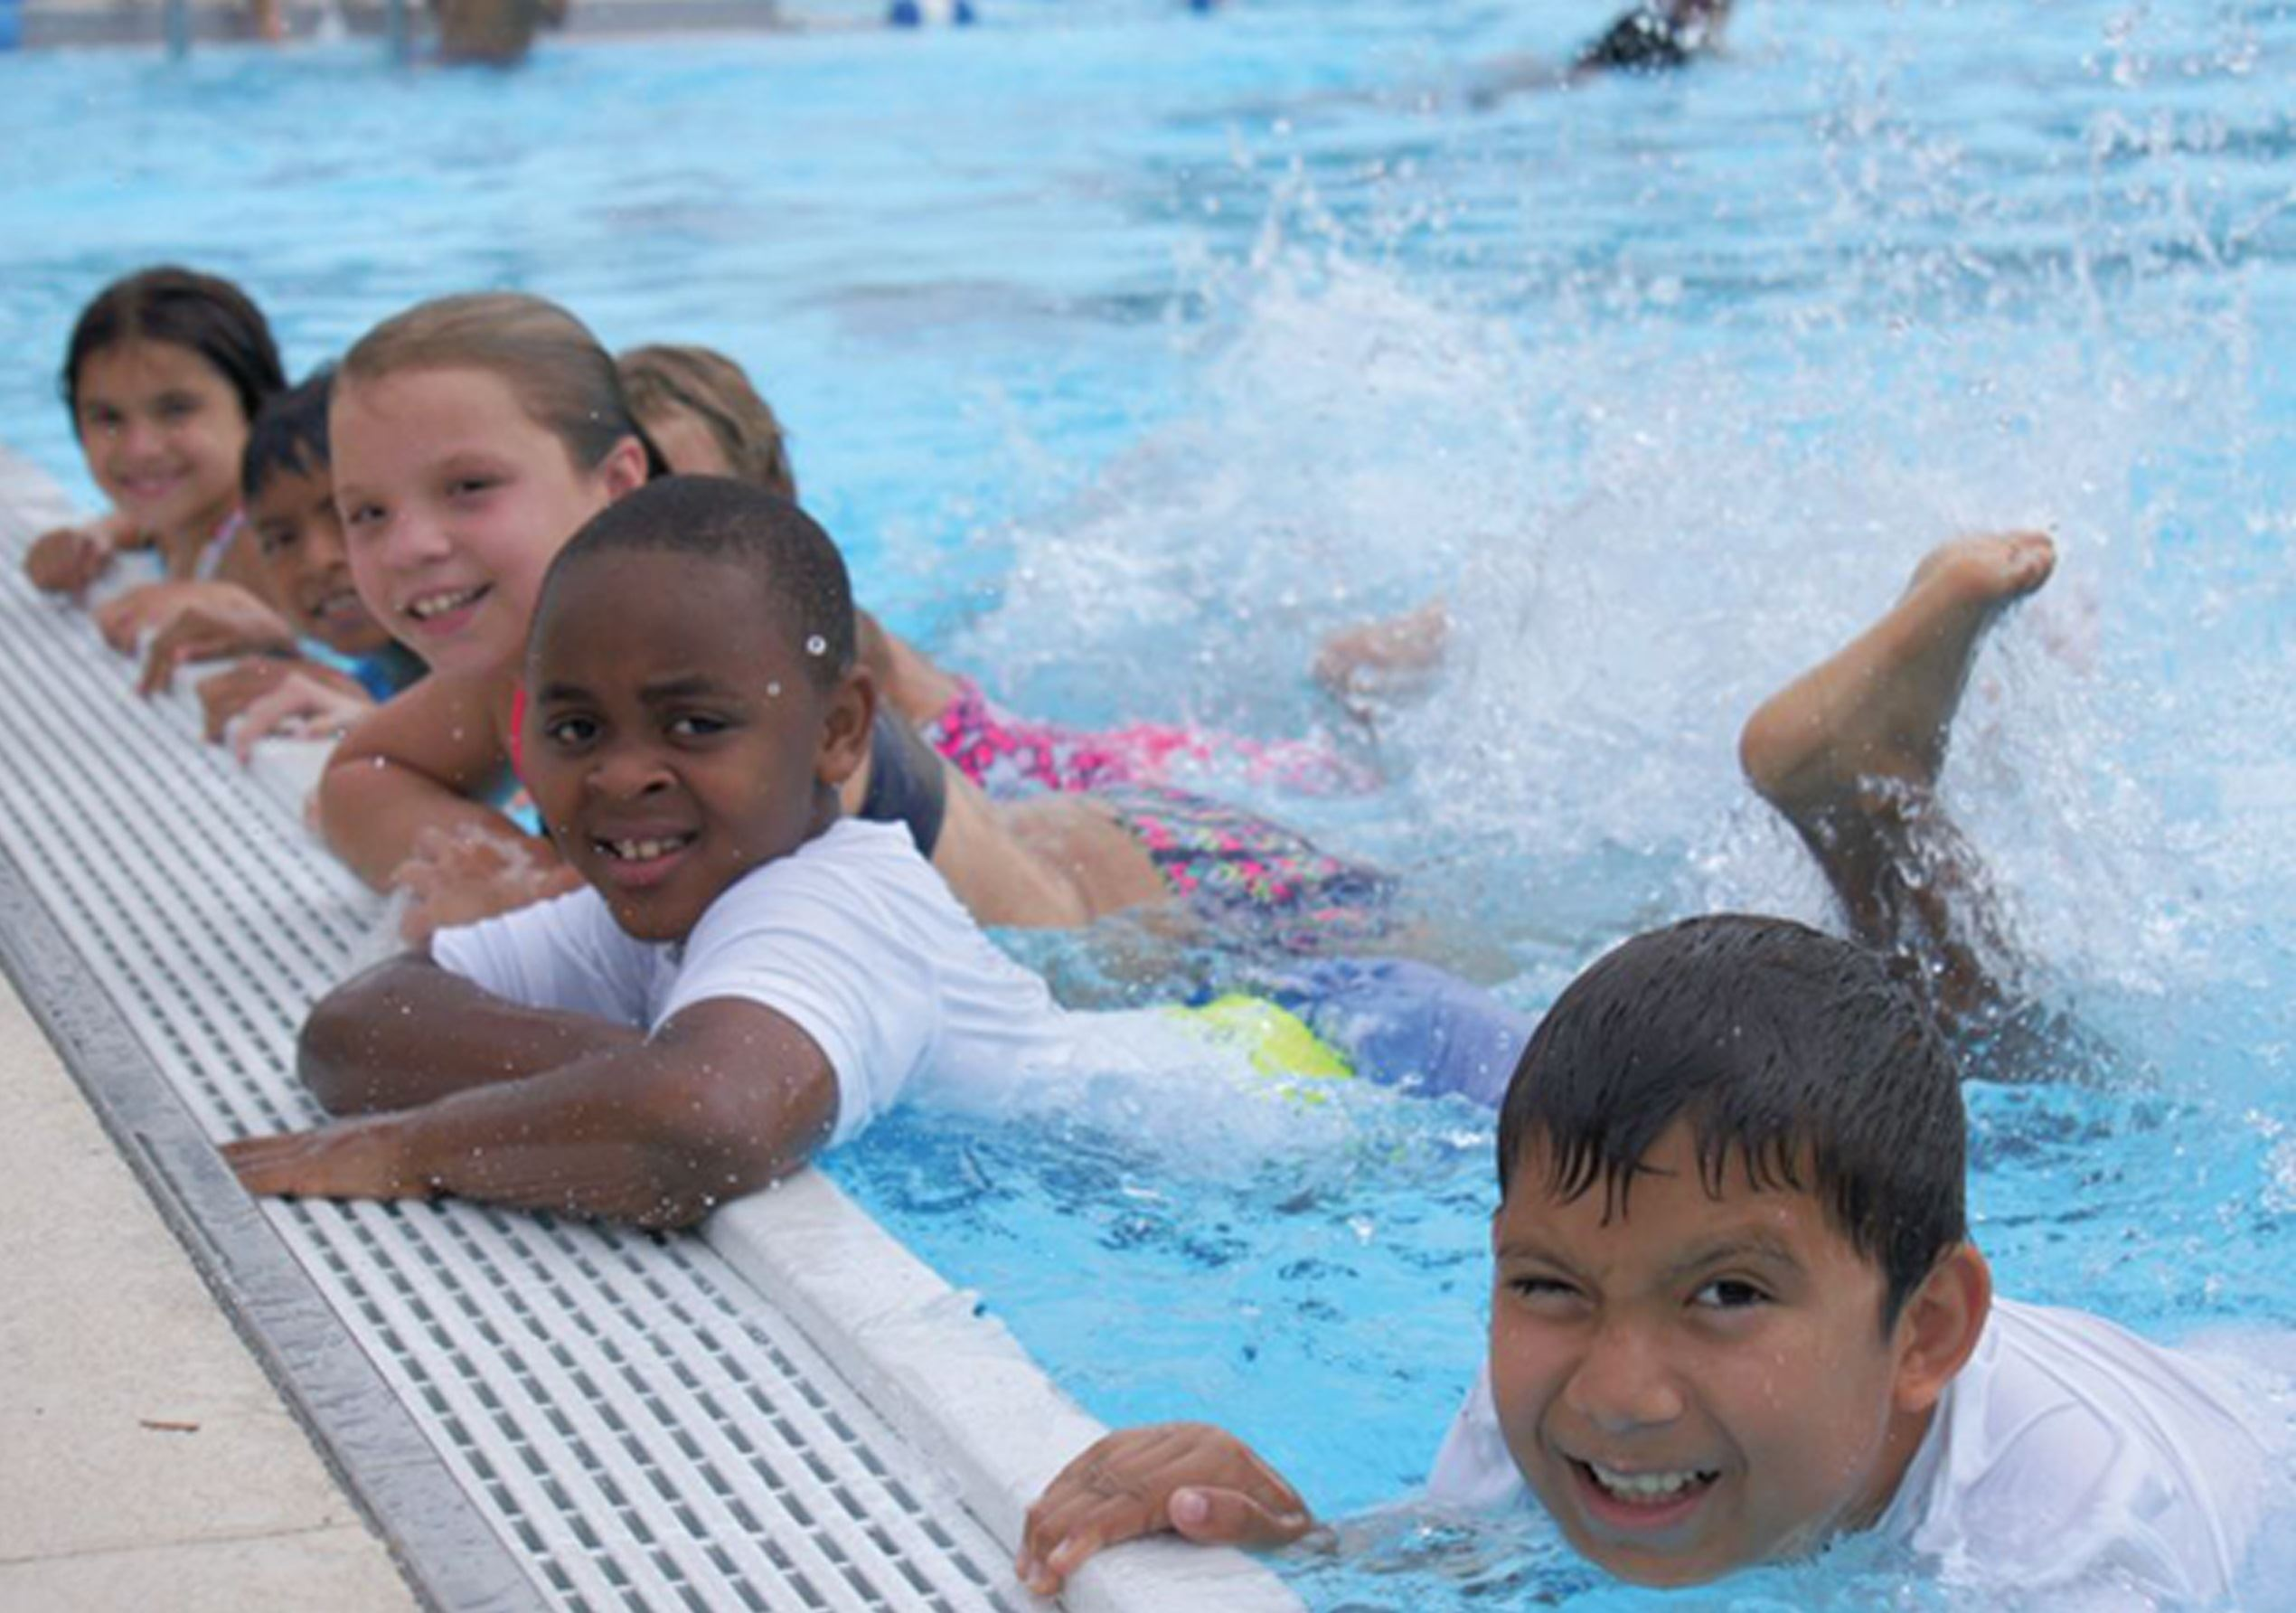 Students holding wall during swim lessons kicking water